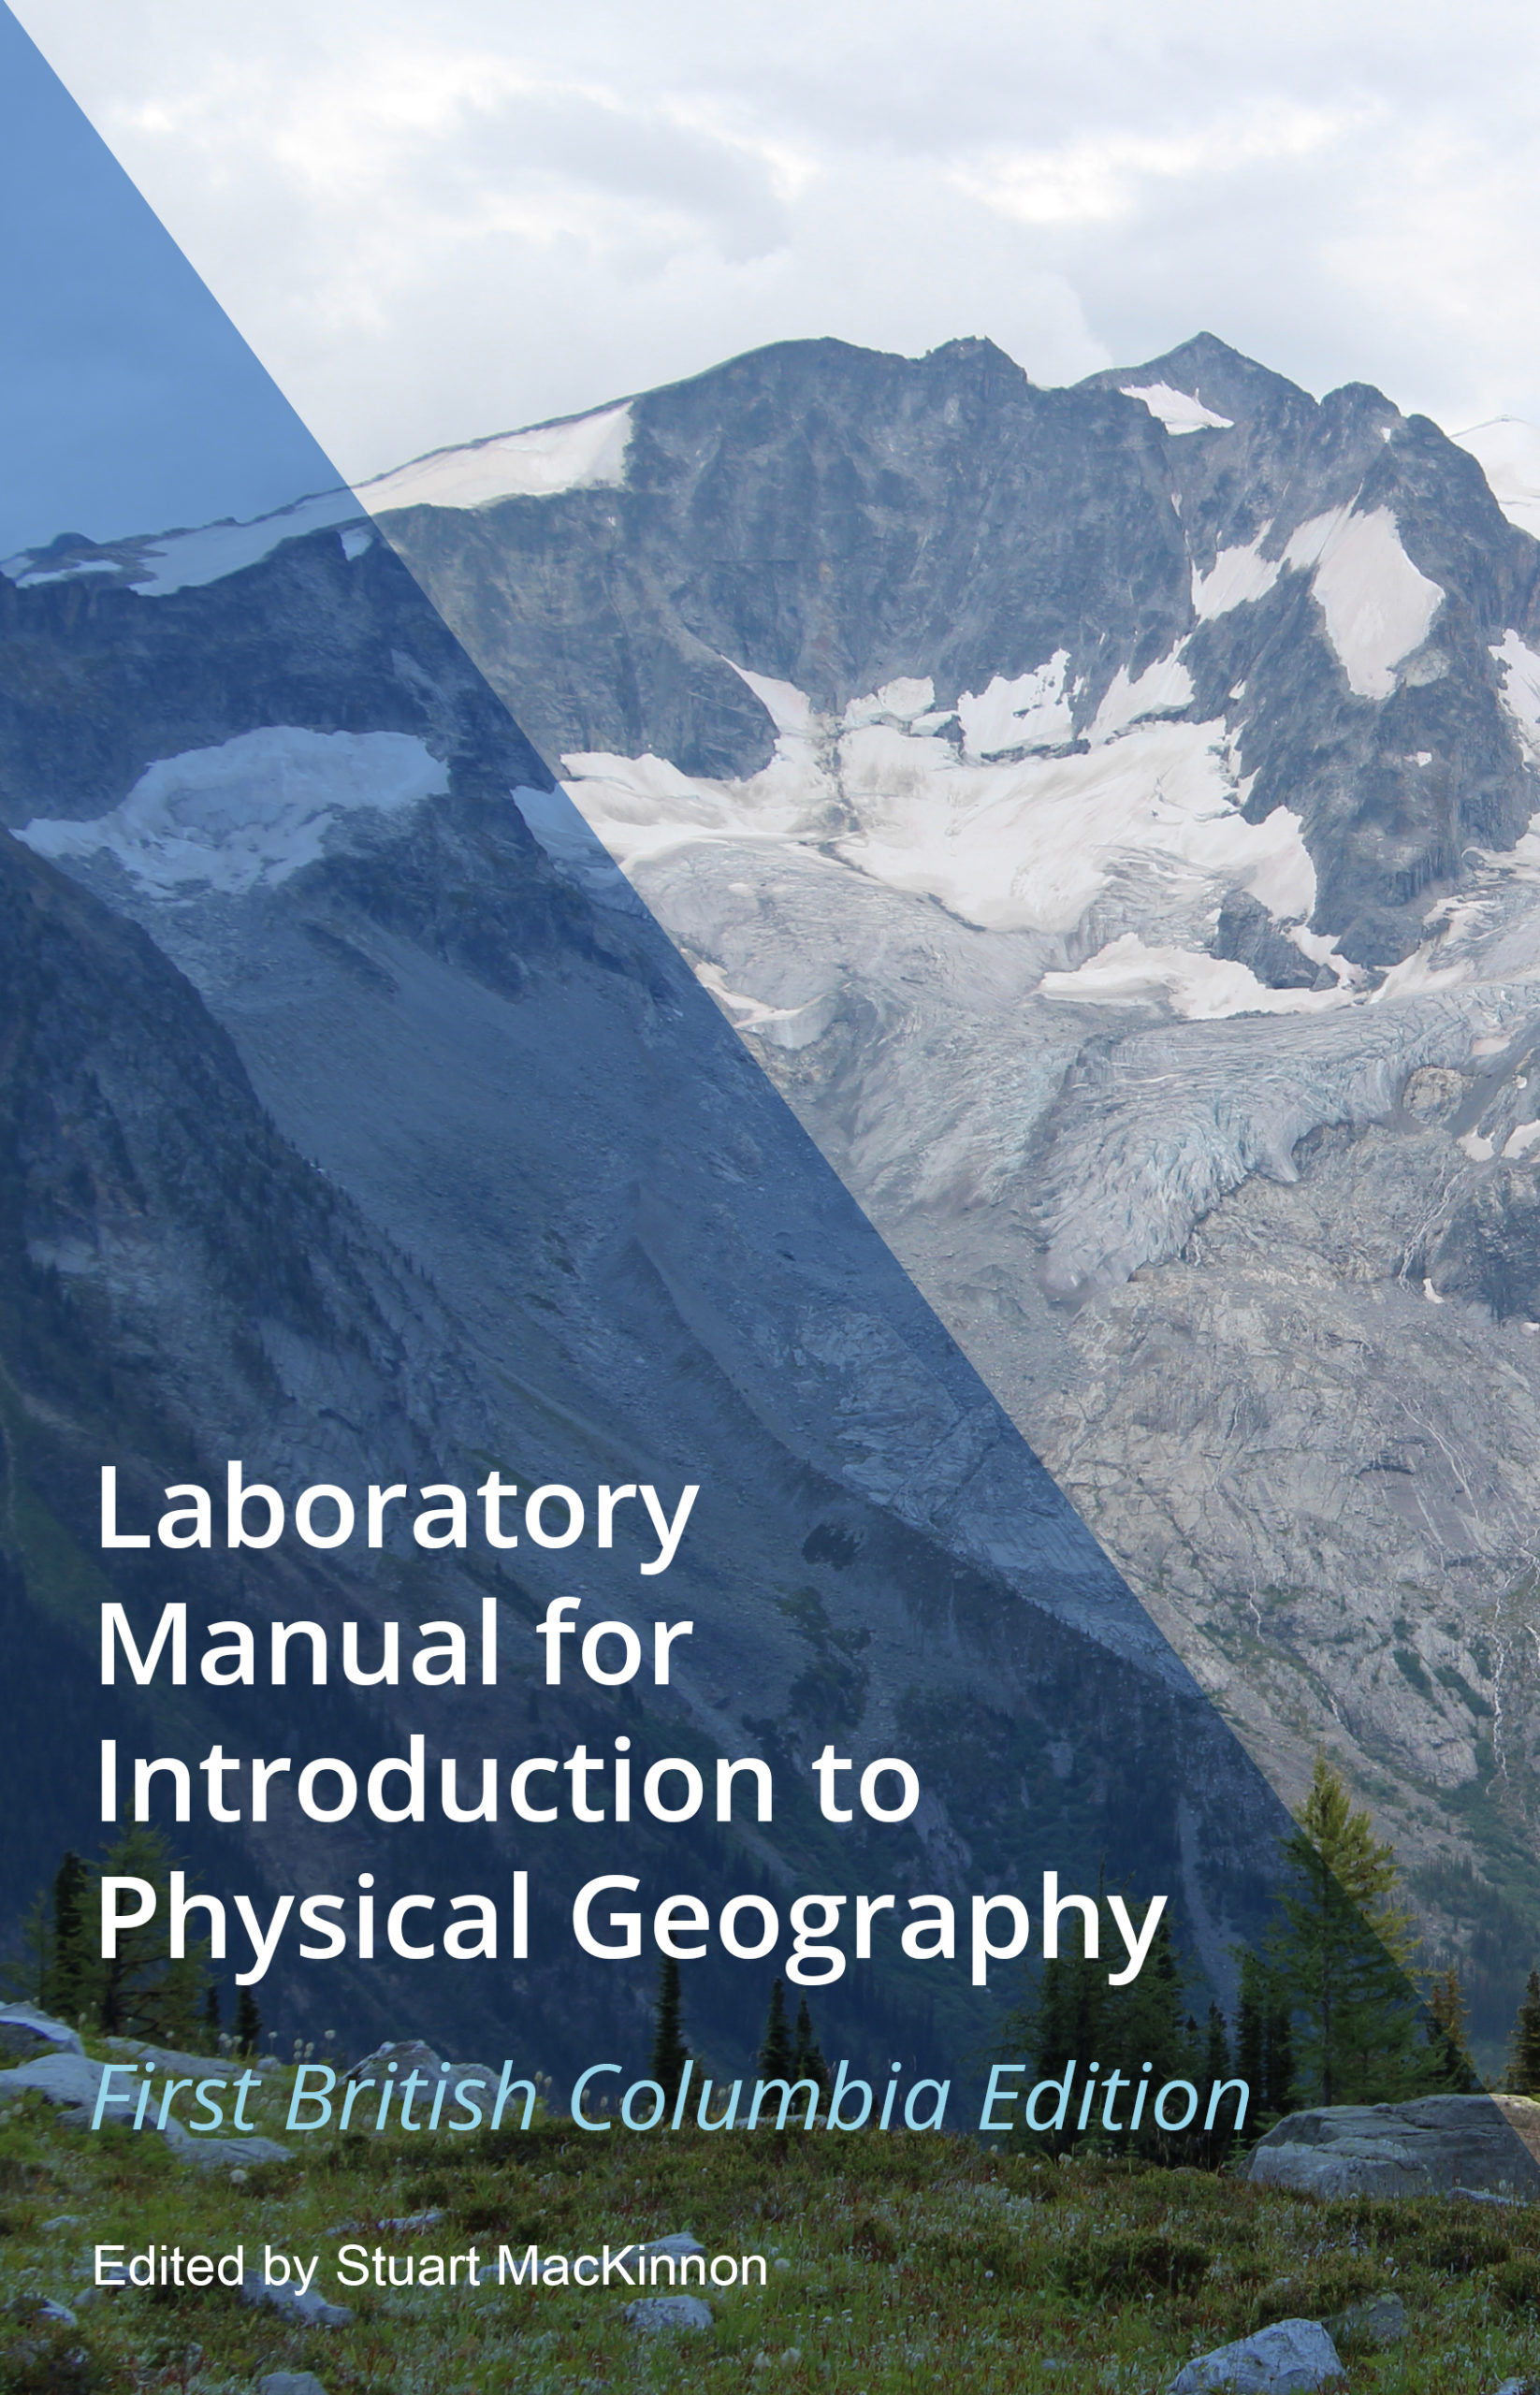 Cover image for Laboratory Manual for Introduction to Physical Geography, First British Columbia Edition